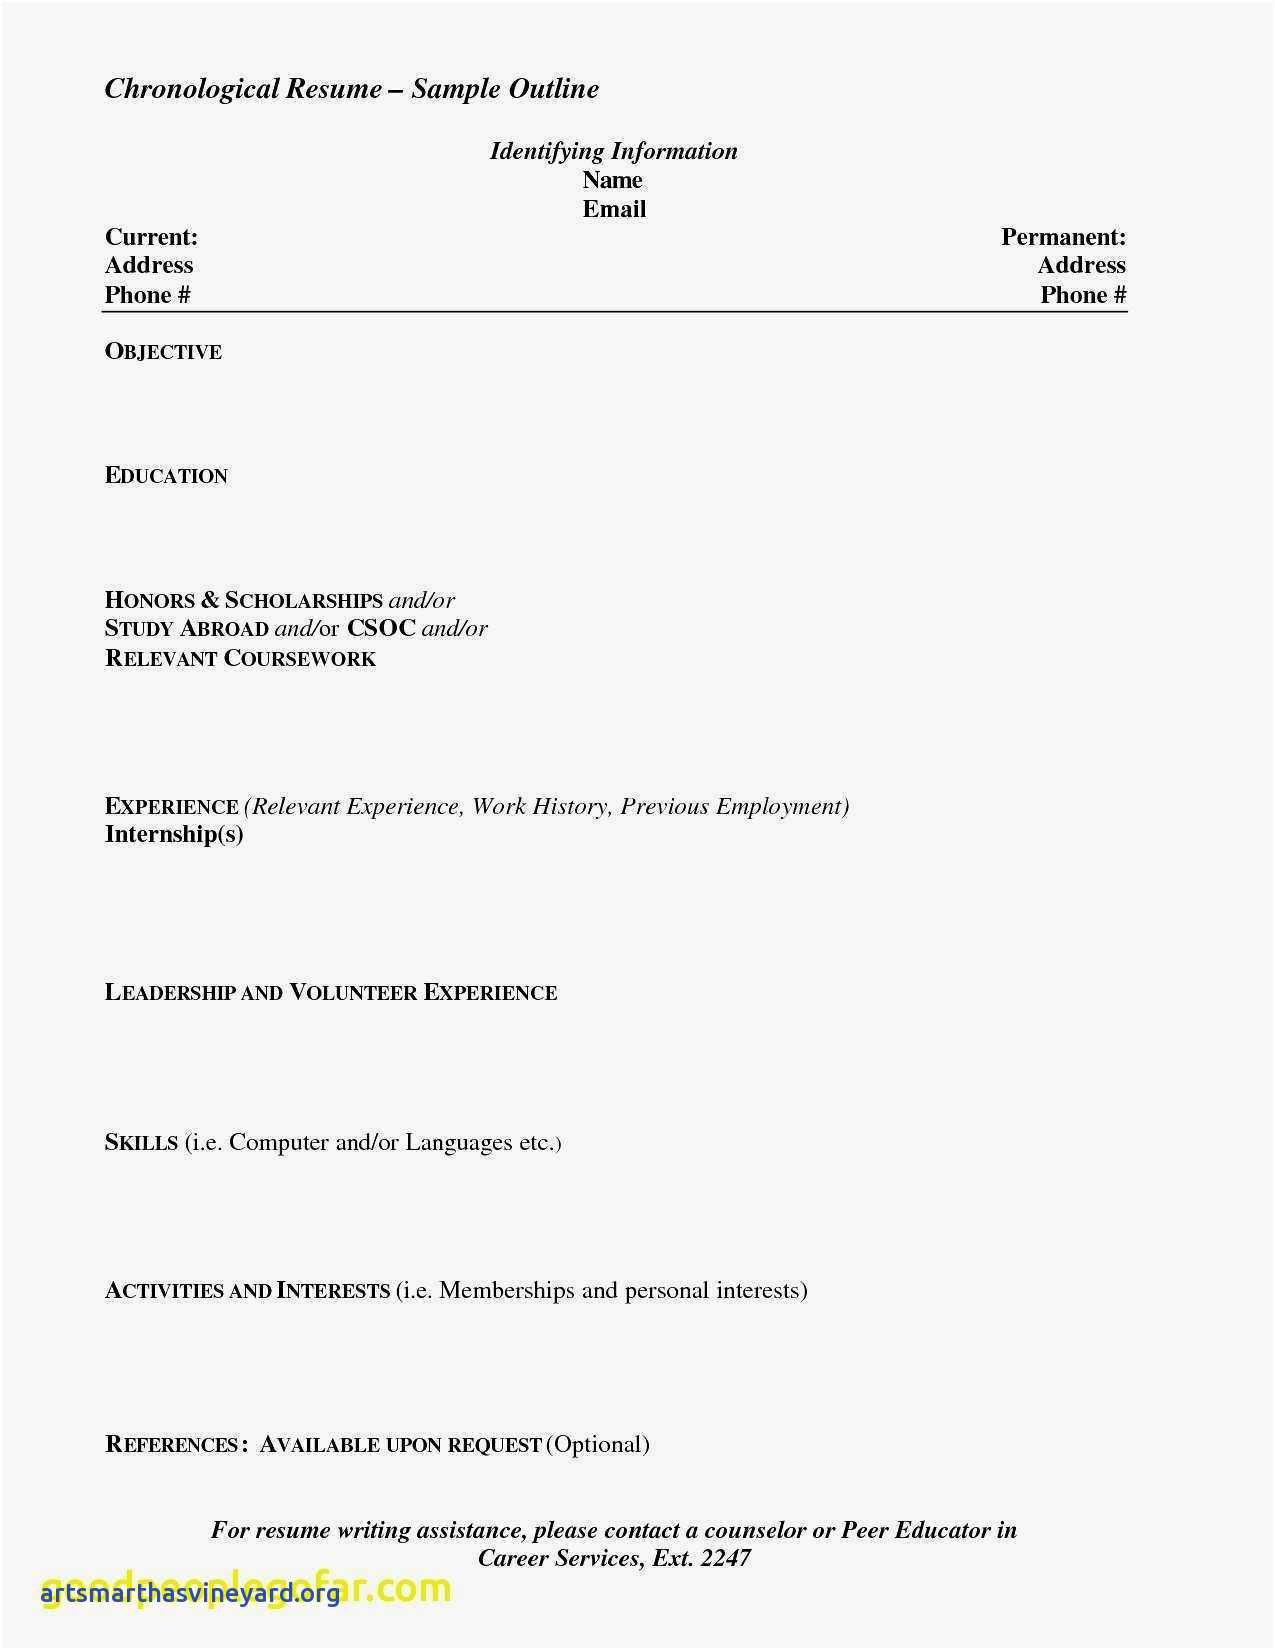 Personal Resume Website - What Should Be A Resume for A Teenager Valid Unique Resume for